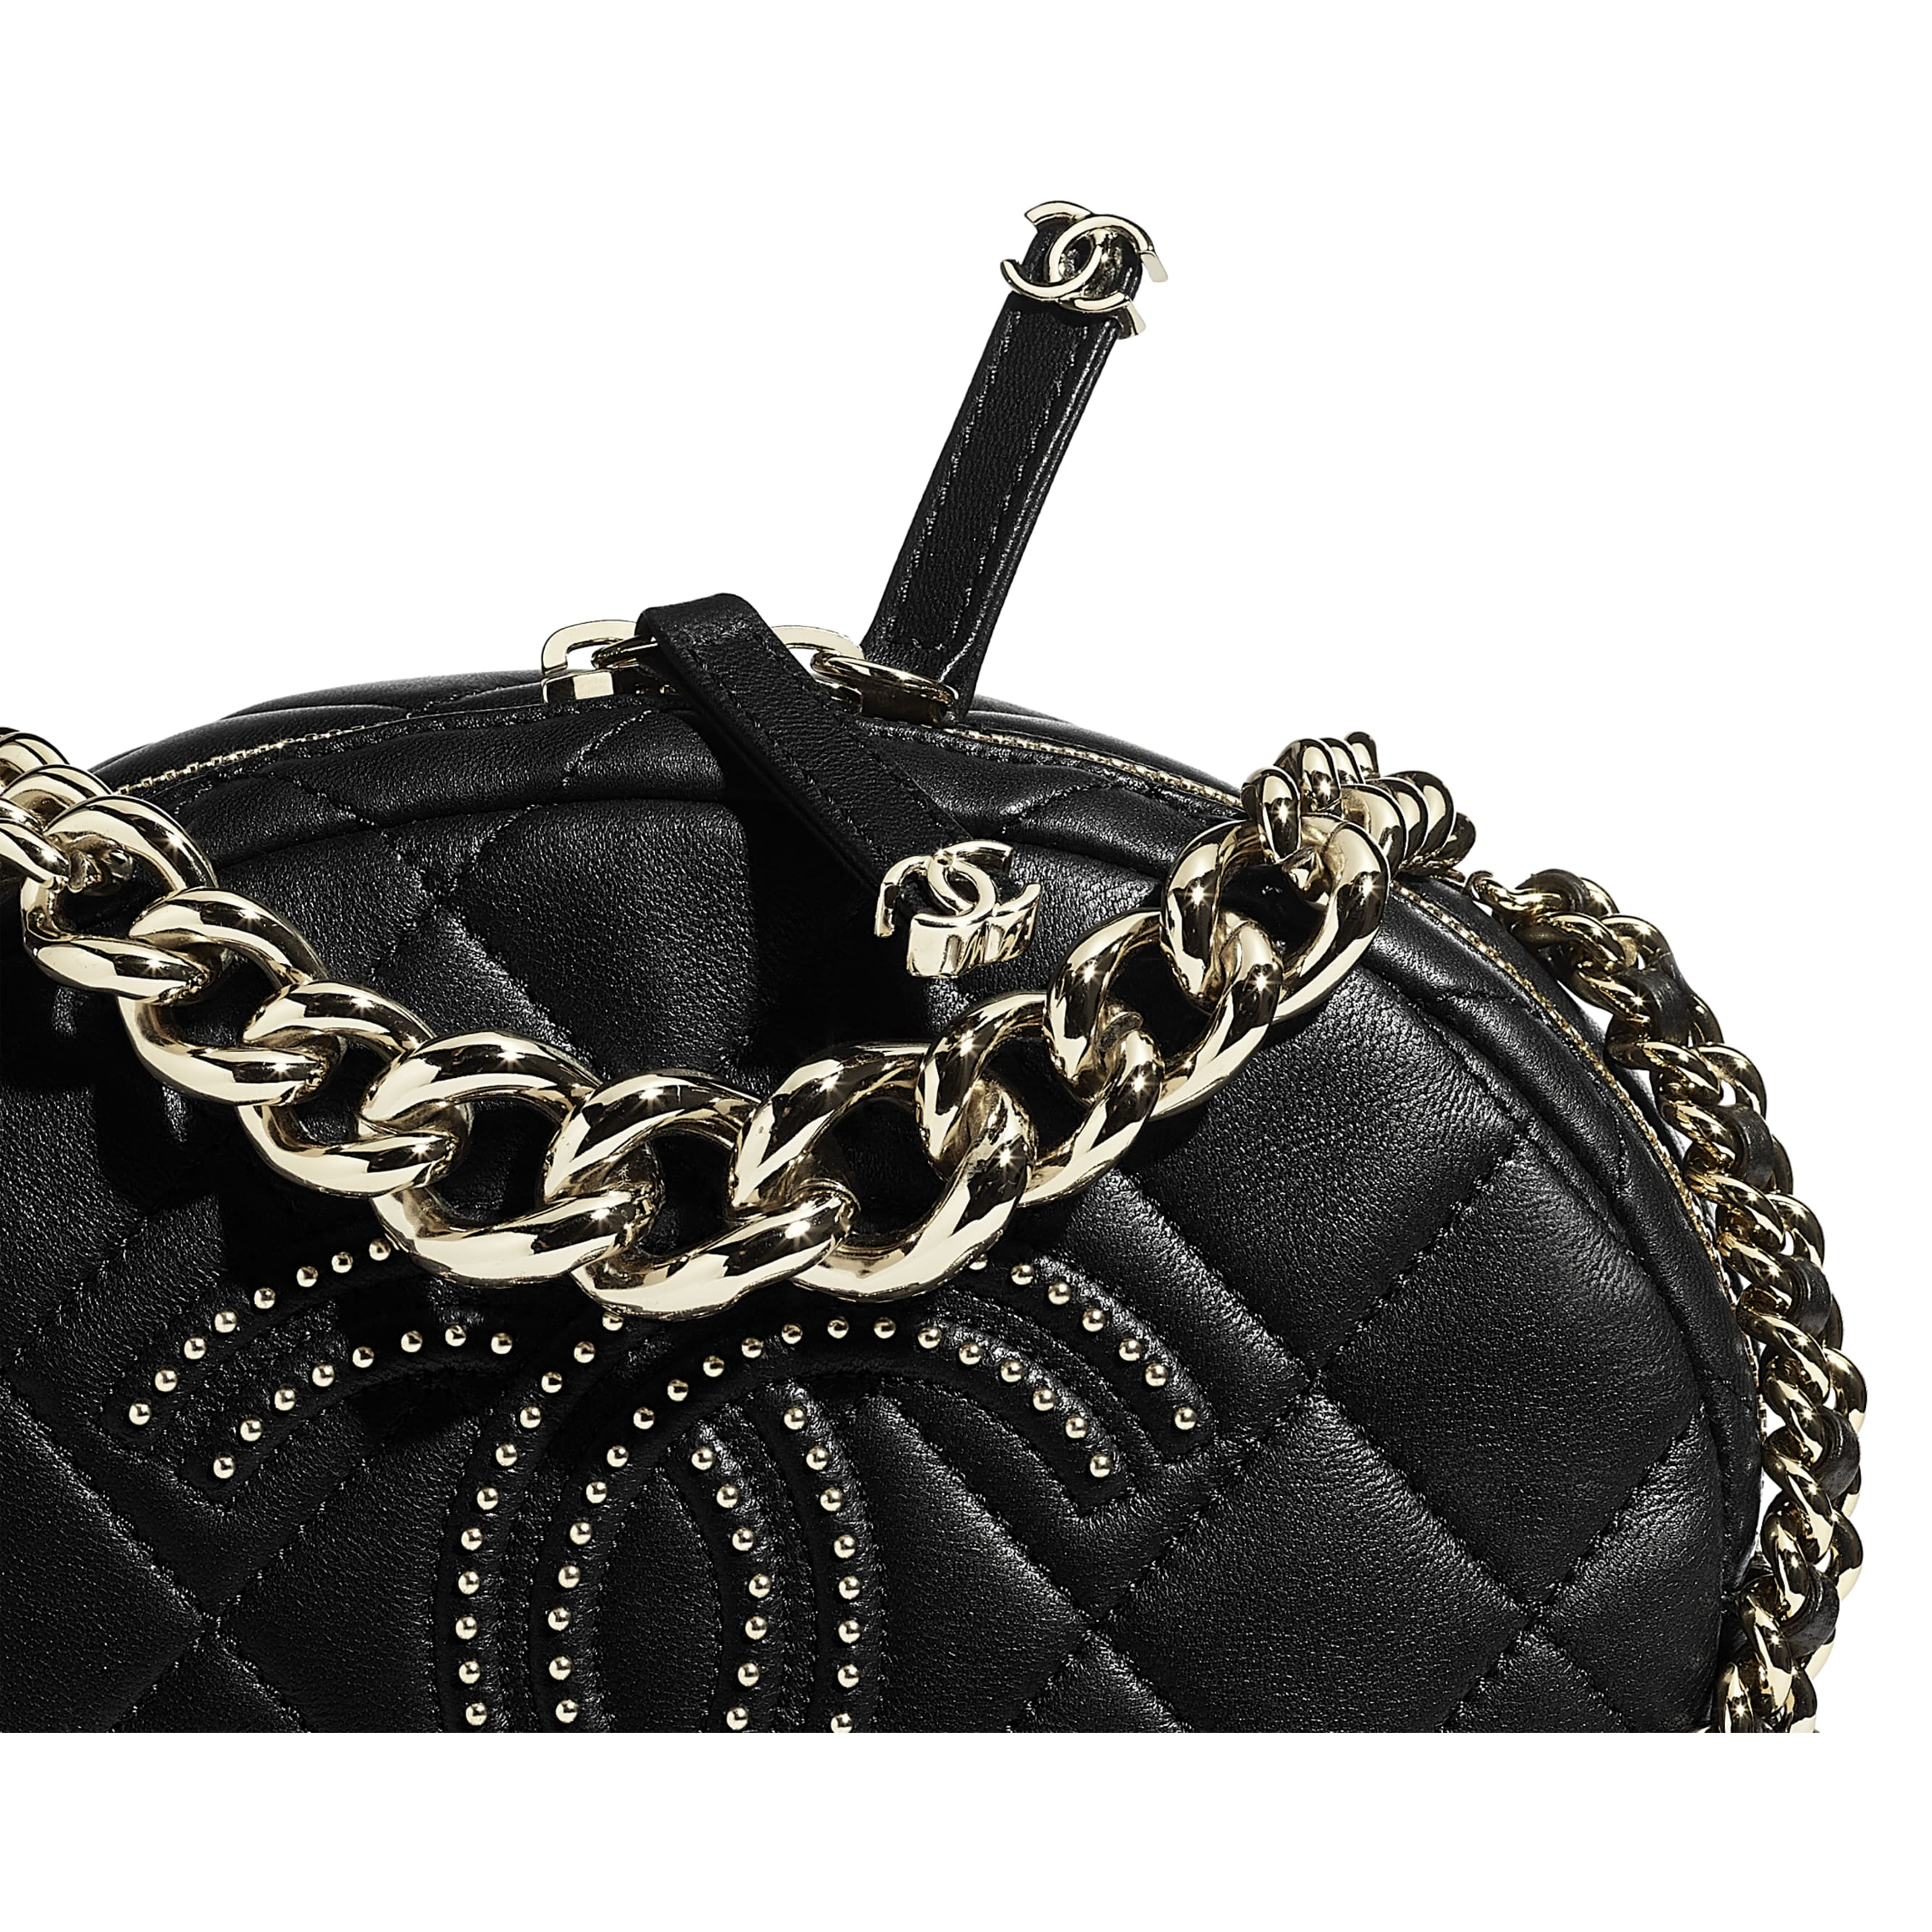 Camera Case - Black - Lambskin, Studs & Gold-Tone Metal - CHANEL - Extra view - see standard sized version